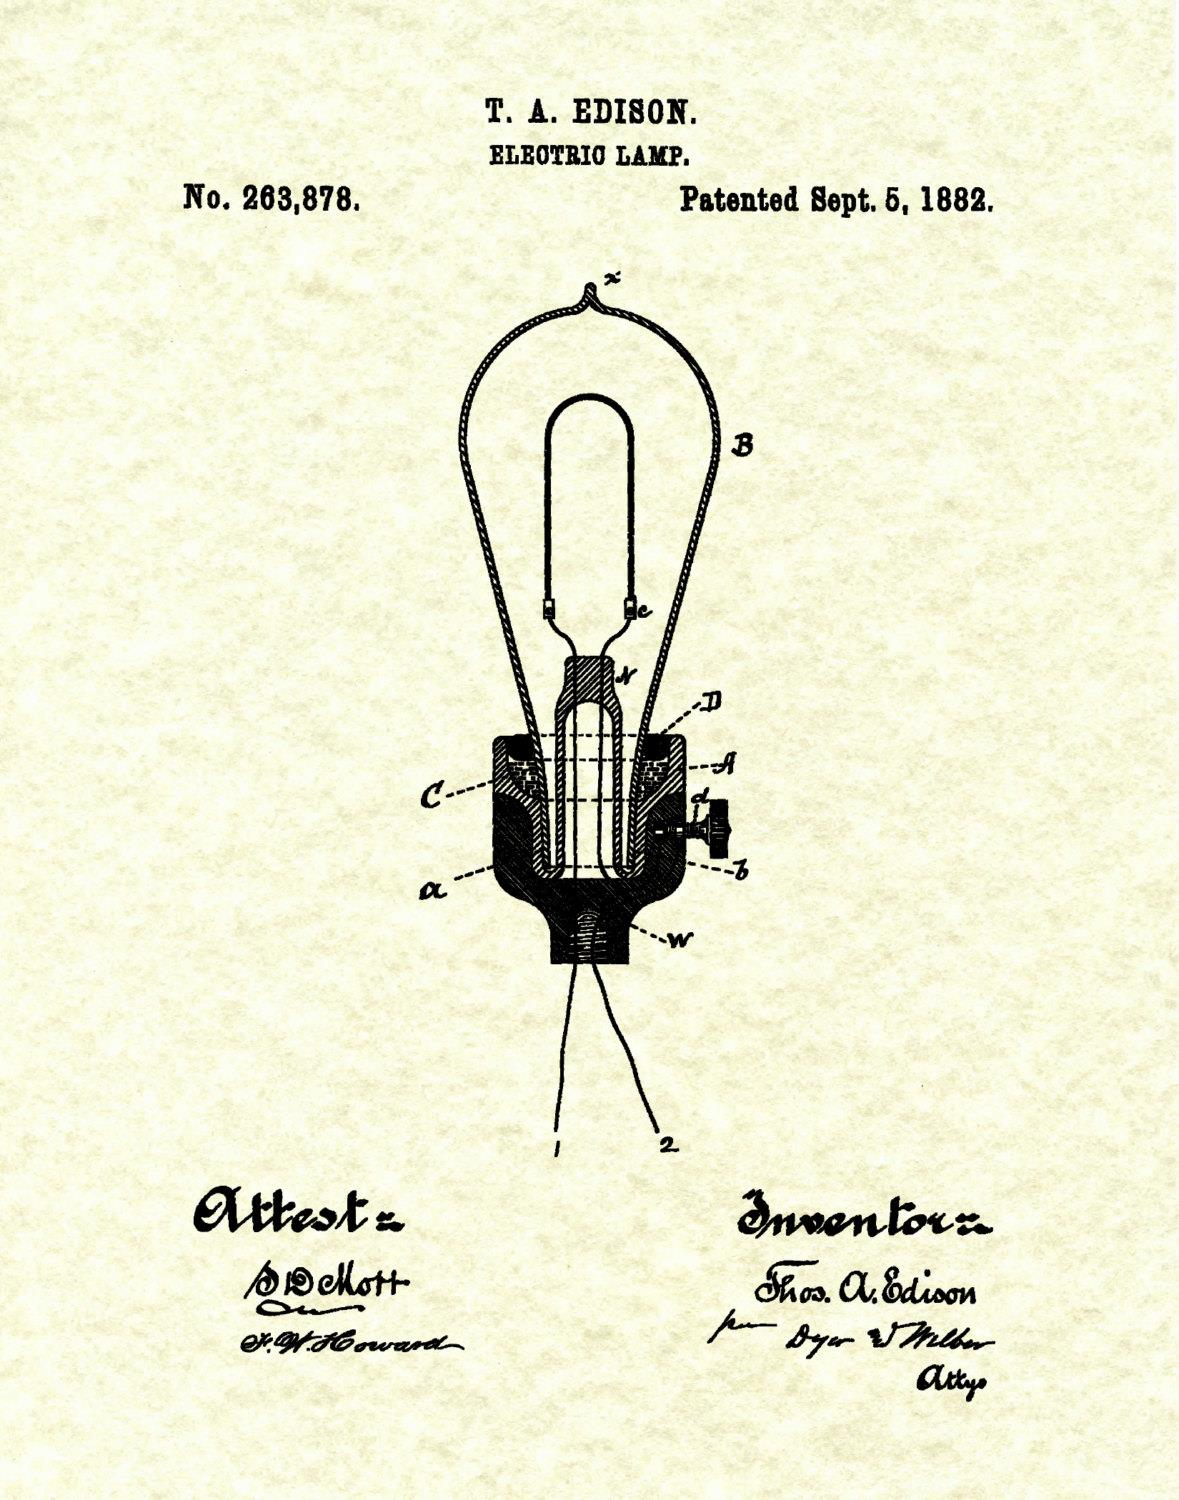 Stories Rotary Club Of Benton Harbor Sunrise Methane Rocket Engine Nikola Tesla Alternating Current Diagram Our Own Bob Gifford Told The Story Electricity Starting From Benjamin Franklin Below Are A Few Inventions Highlighted For Us